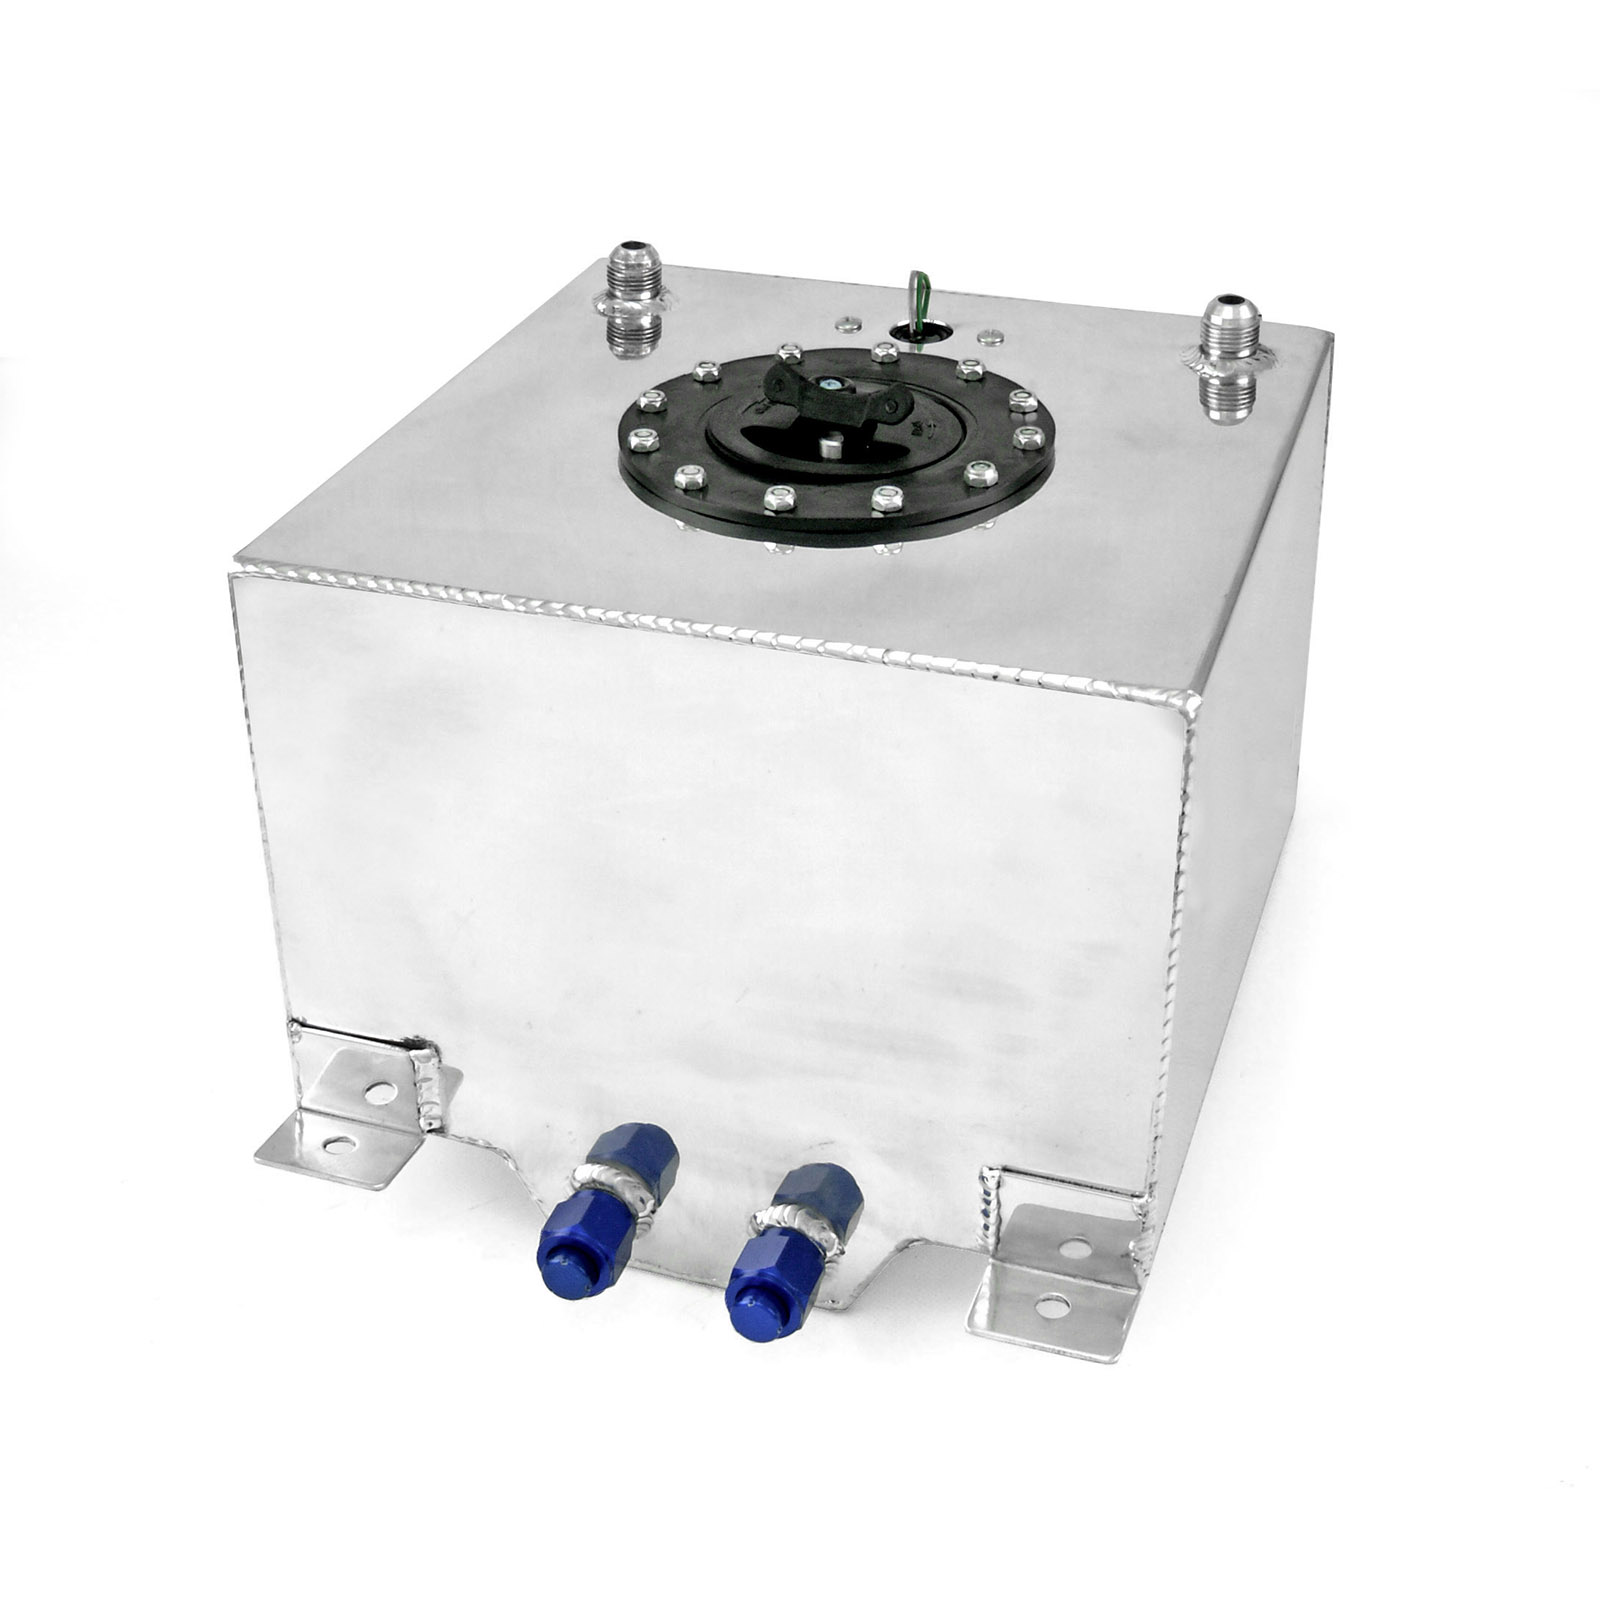 5 Gallon / 19 Litre Lightweight Polished Aluminum Fuel Cell w/ Sender